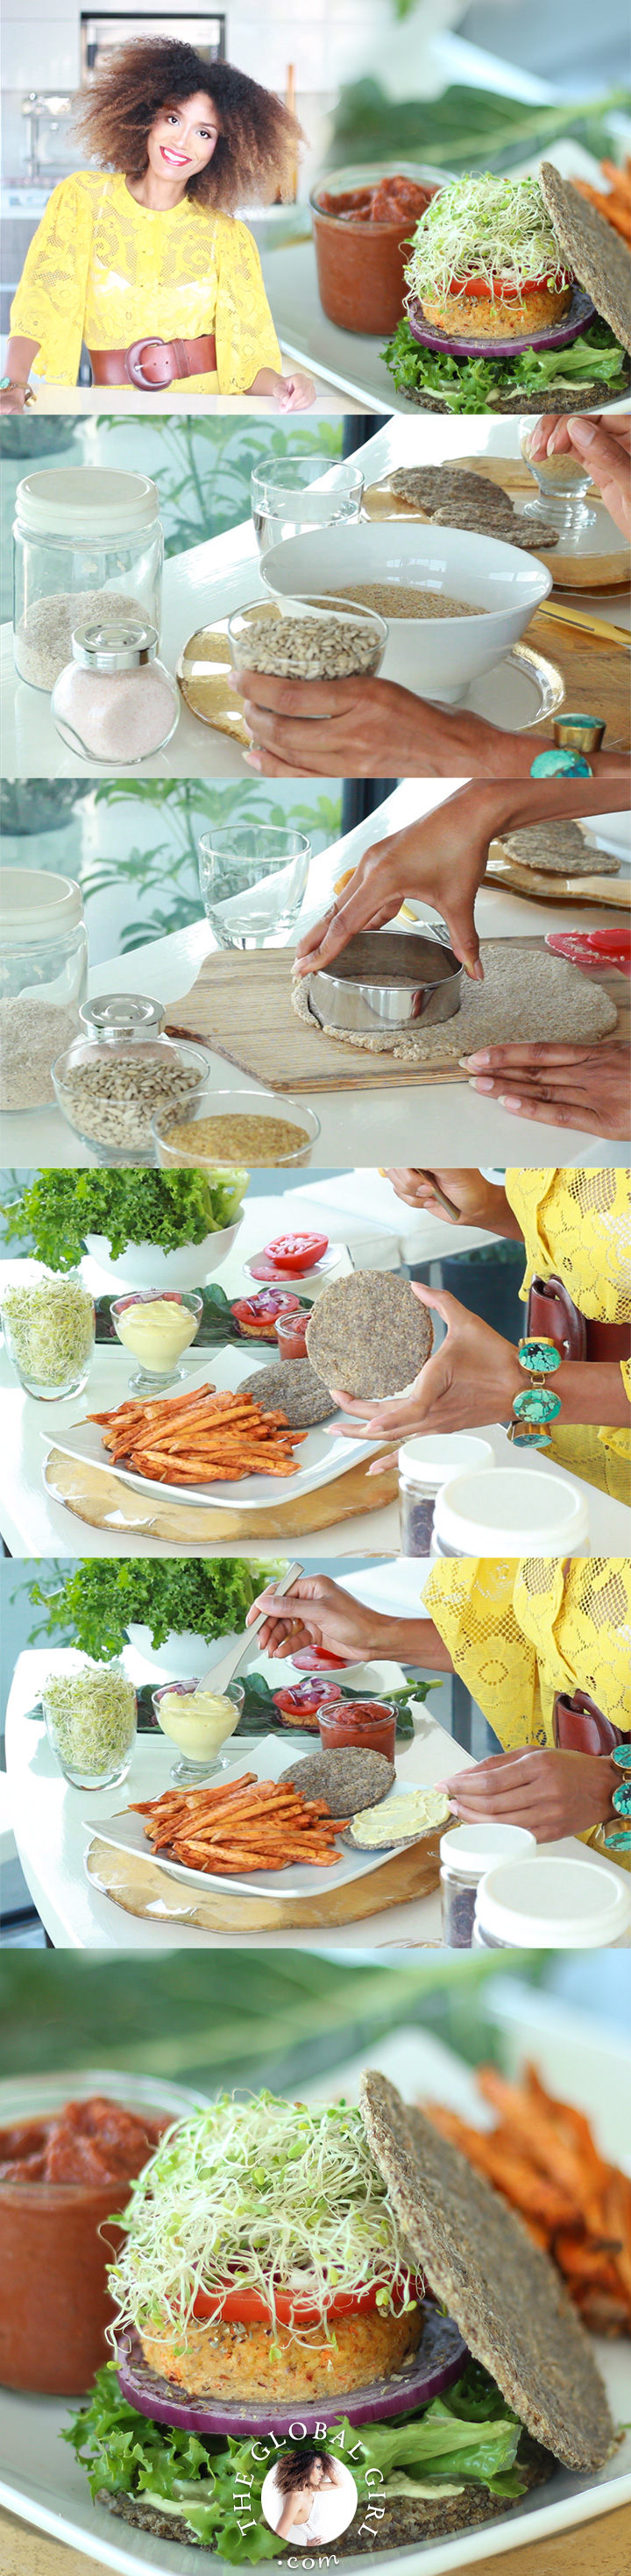 The Global Girl Raw Recipes: Ndoema shares her super simple nut-free, oil-free, grain-free and gluten-free raw vegan burger buns. They're the perfect balance of light and hearty and crunchy but soft. Delish slathered with mayo (the beauty-boosting kind: http://theglobalgirl.com/raw-dressings/) and combined with her no-bake burger patties and no-fry French fries, with a serving fat-free raw vegan ketchup on the side.